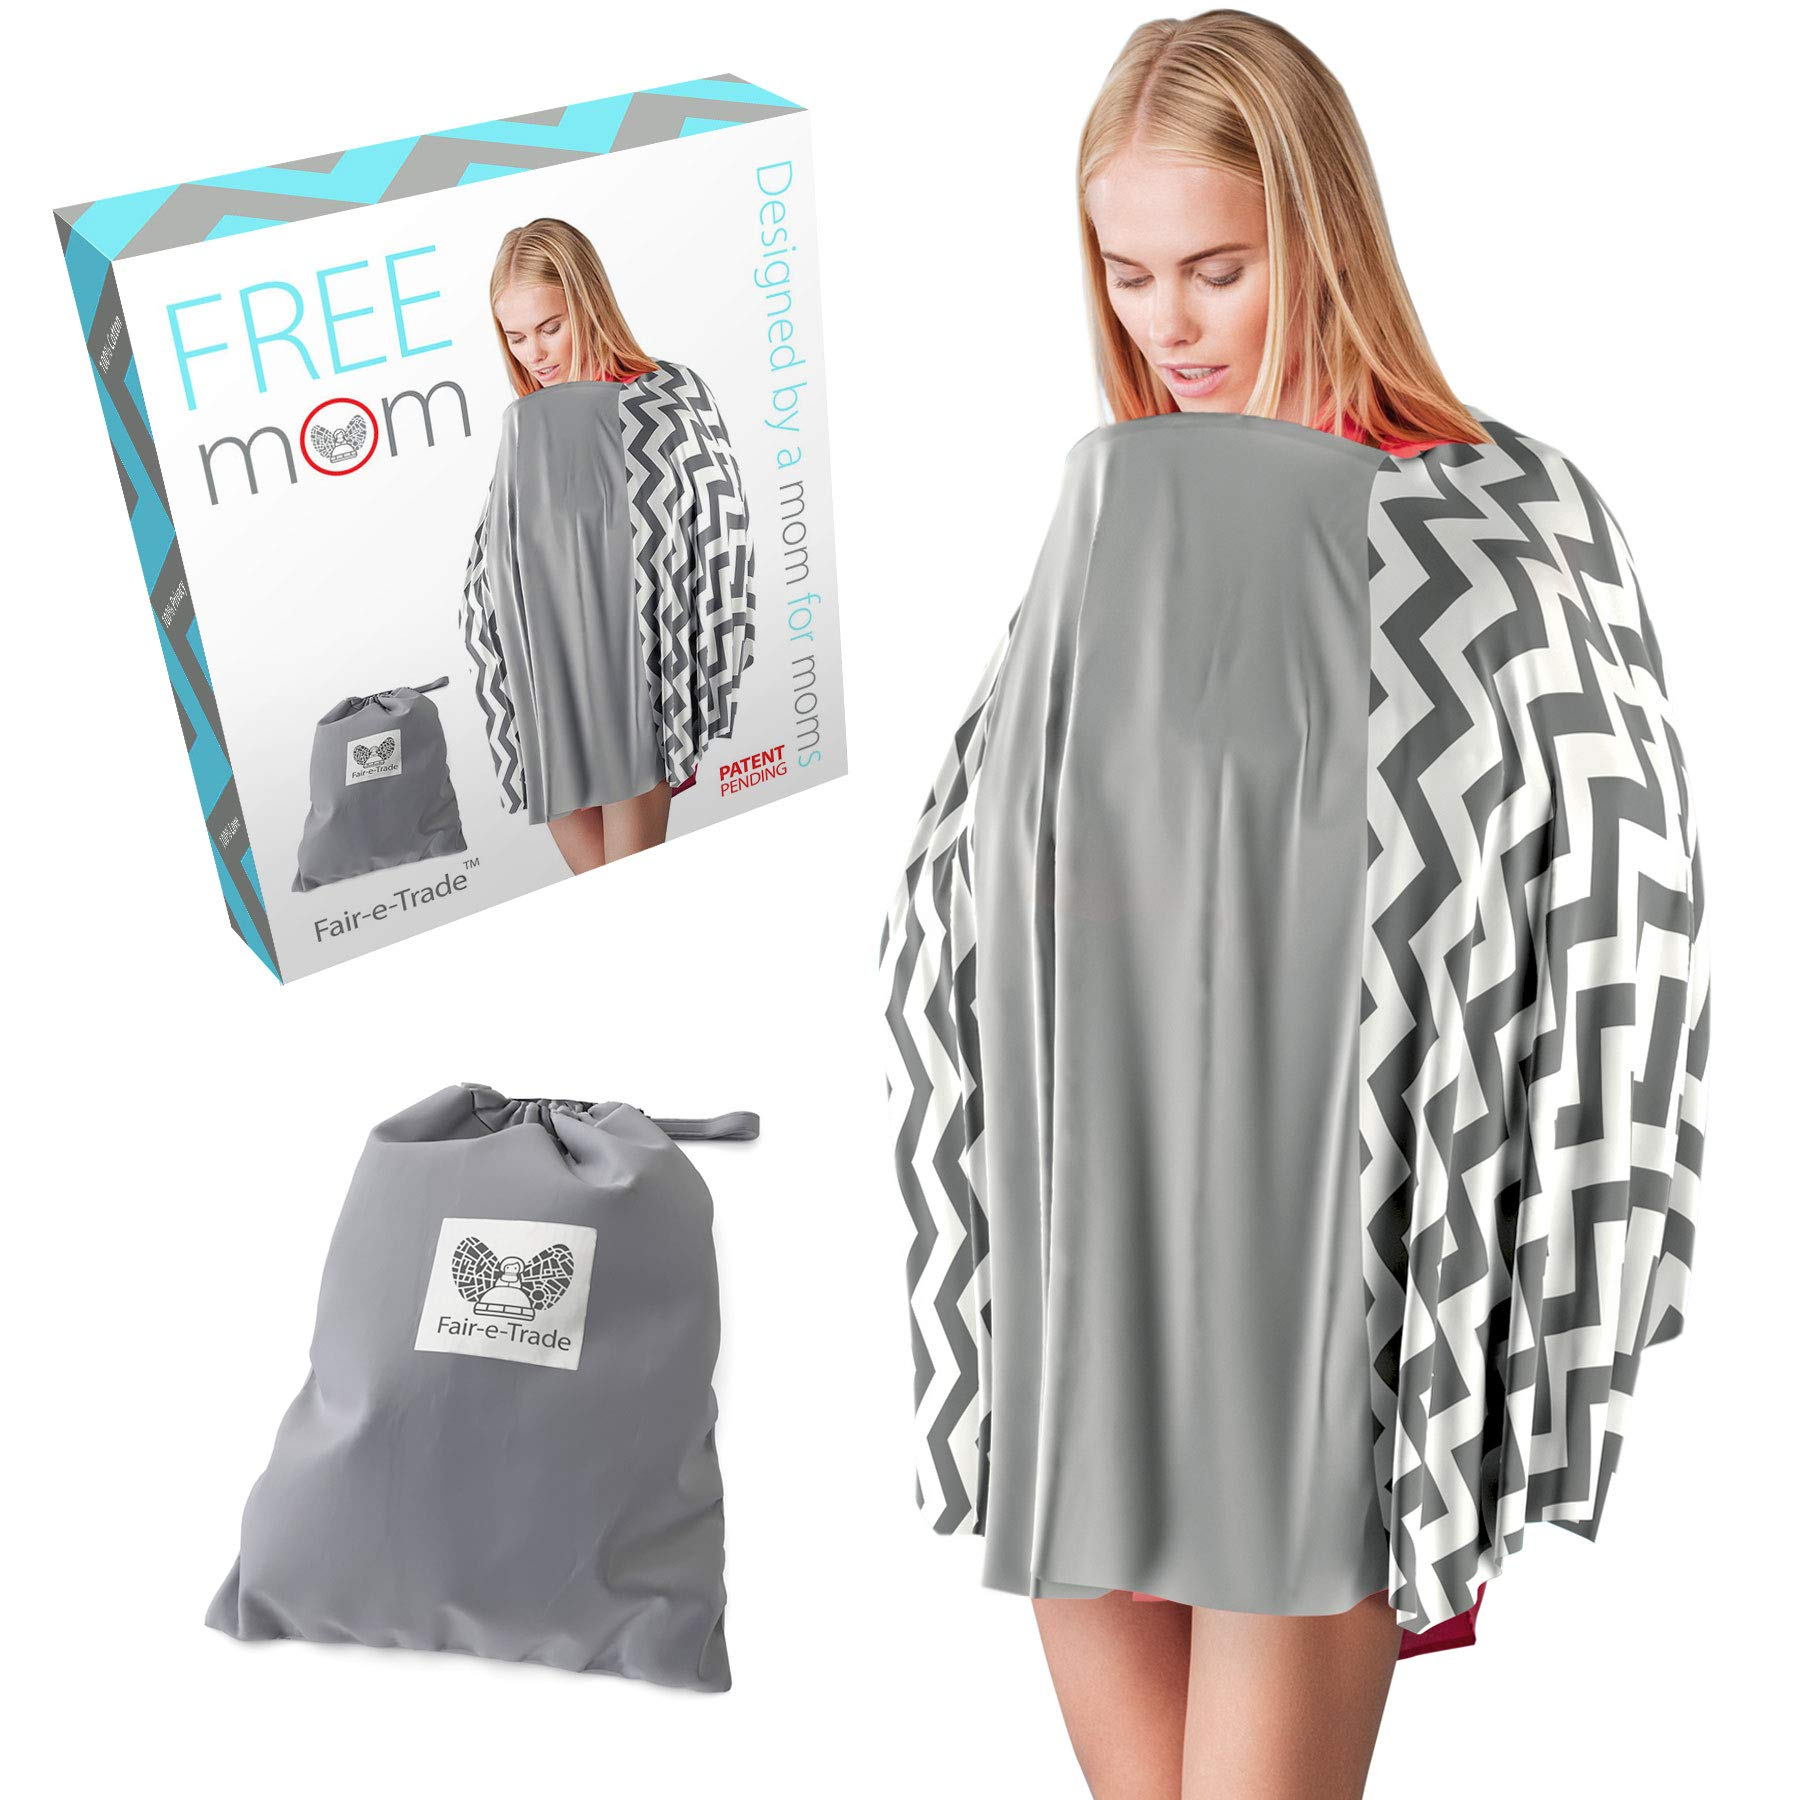 New Nursing Cover Poncho Style - Rigid Neckline Breastfeeding Cover w/Carry Bag - Covers Fully-100% Soft Breathable Cotton to Fit All for Discreet Feeding in Public. Bonus Soft Muslin Baby Washcloth